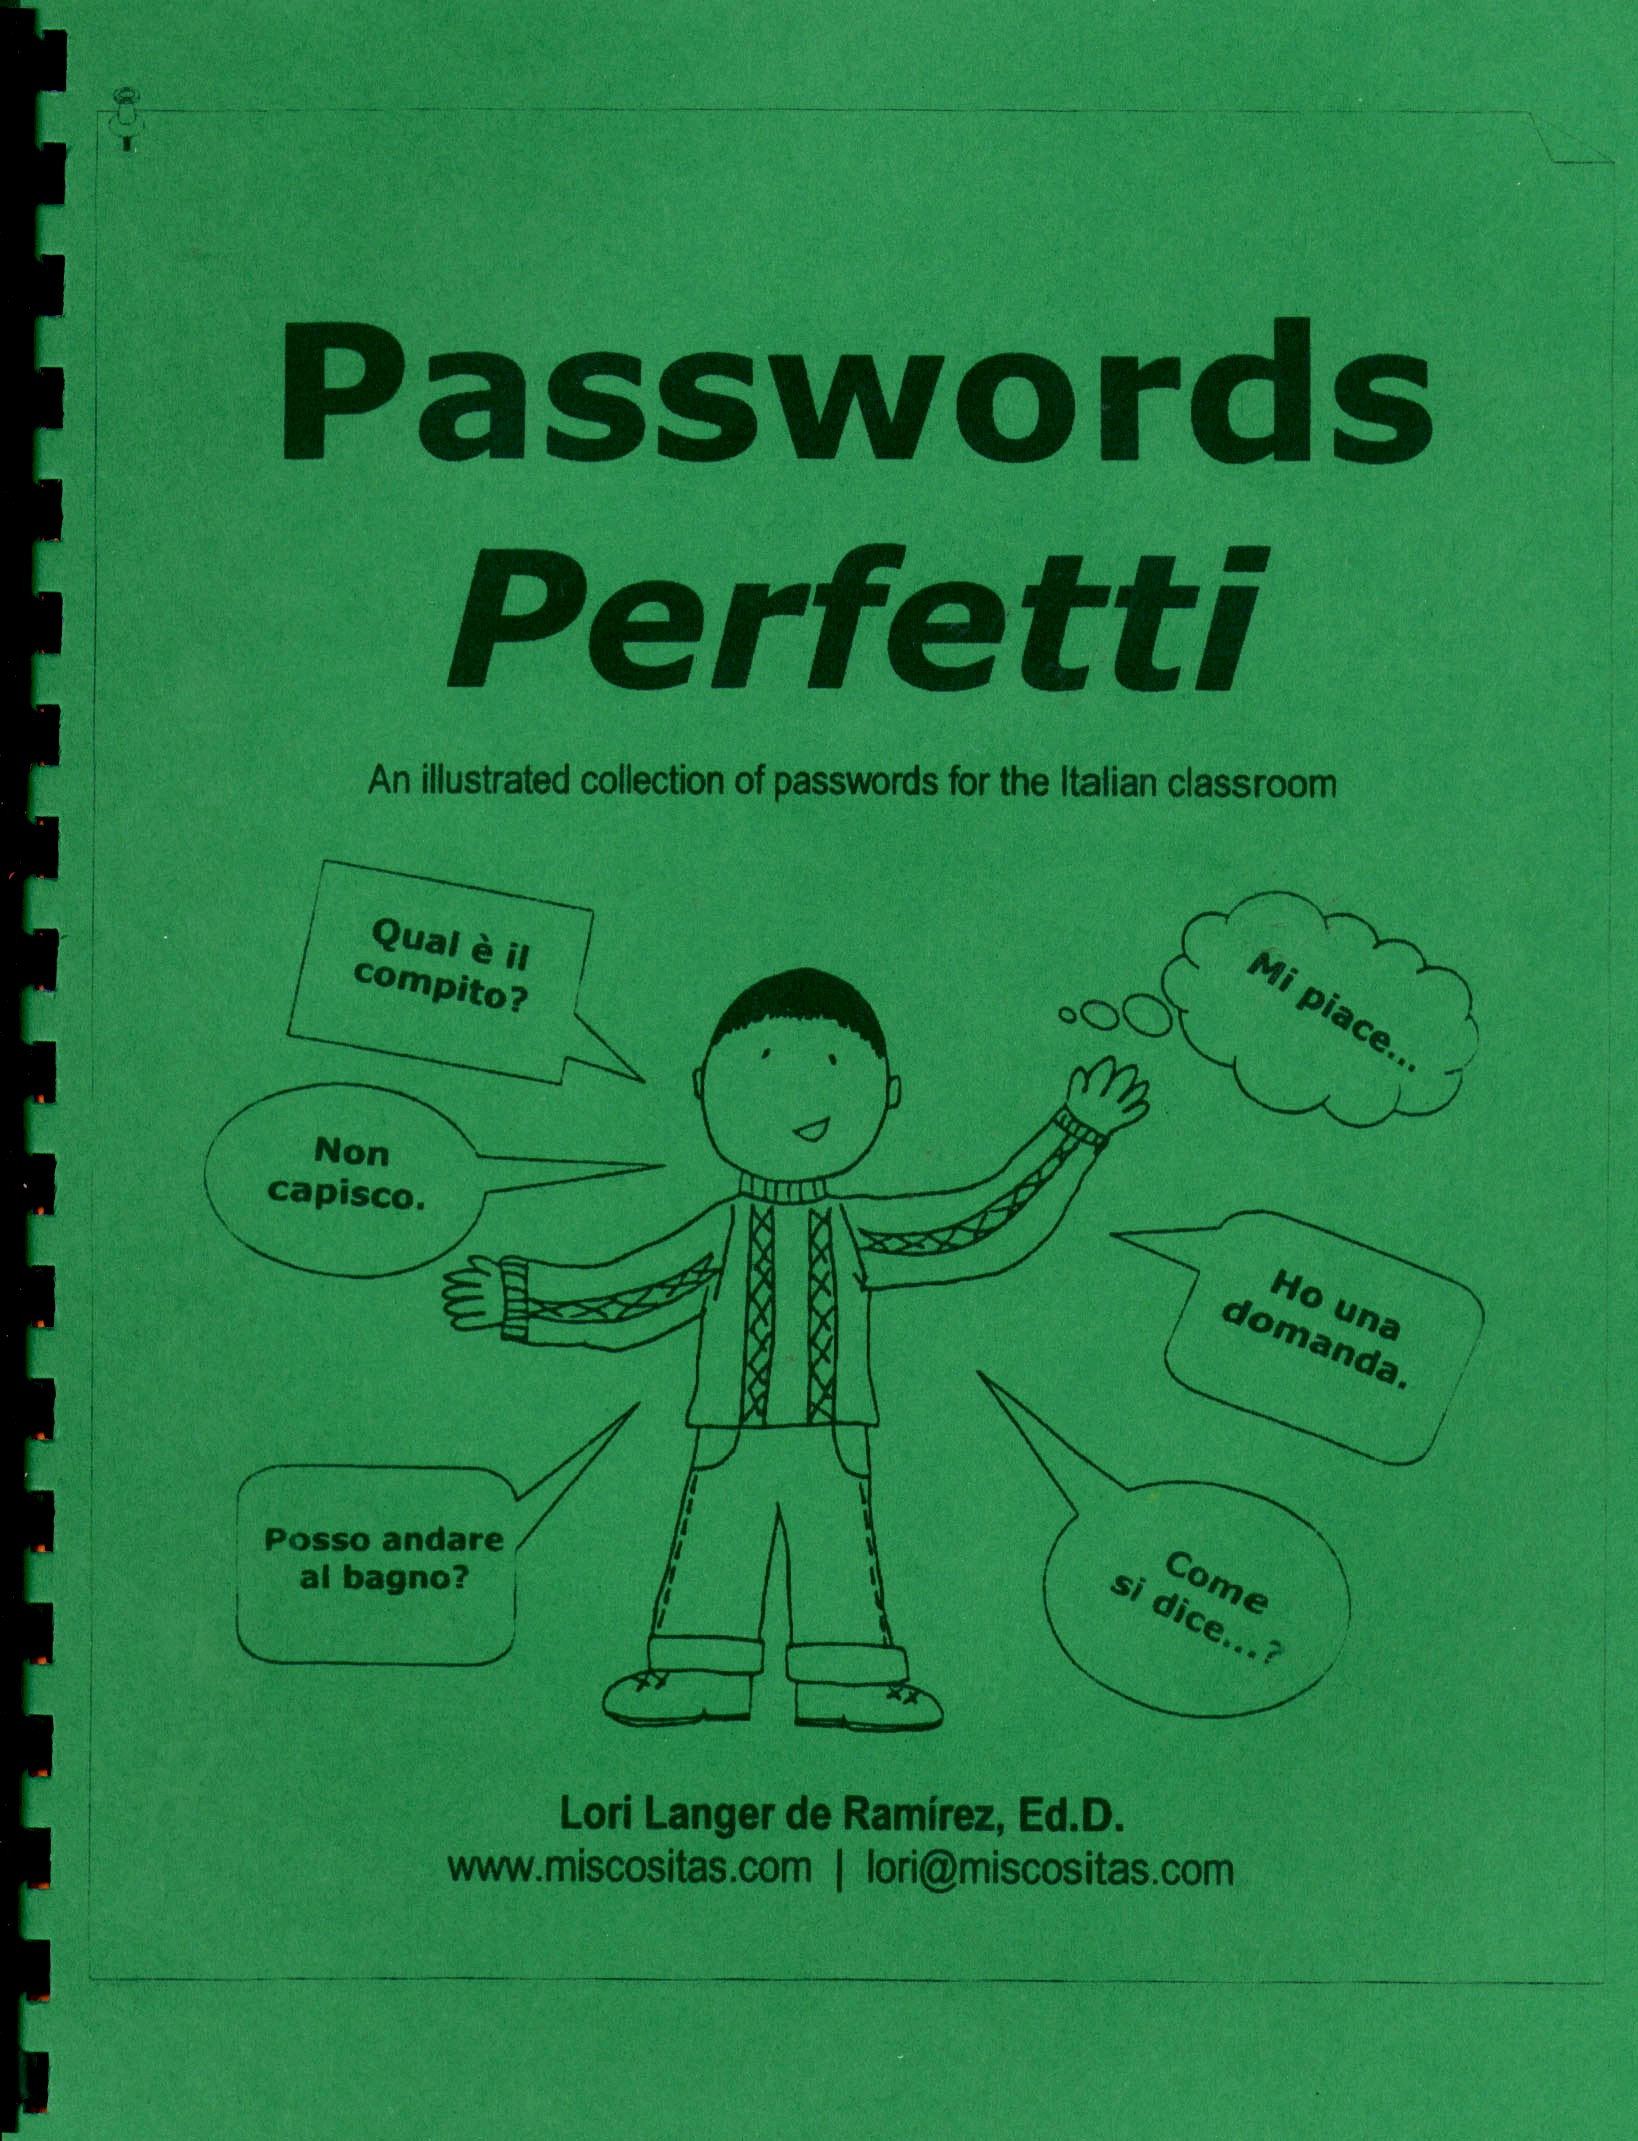 Passwords Perfetti